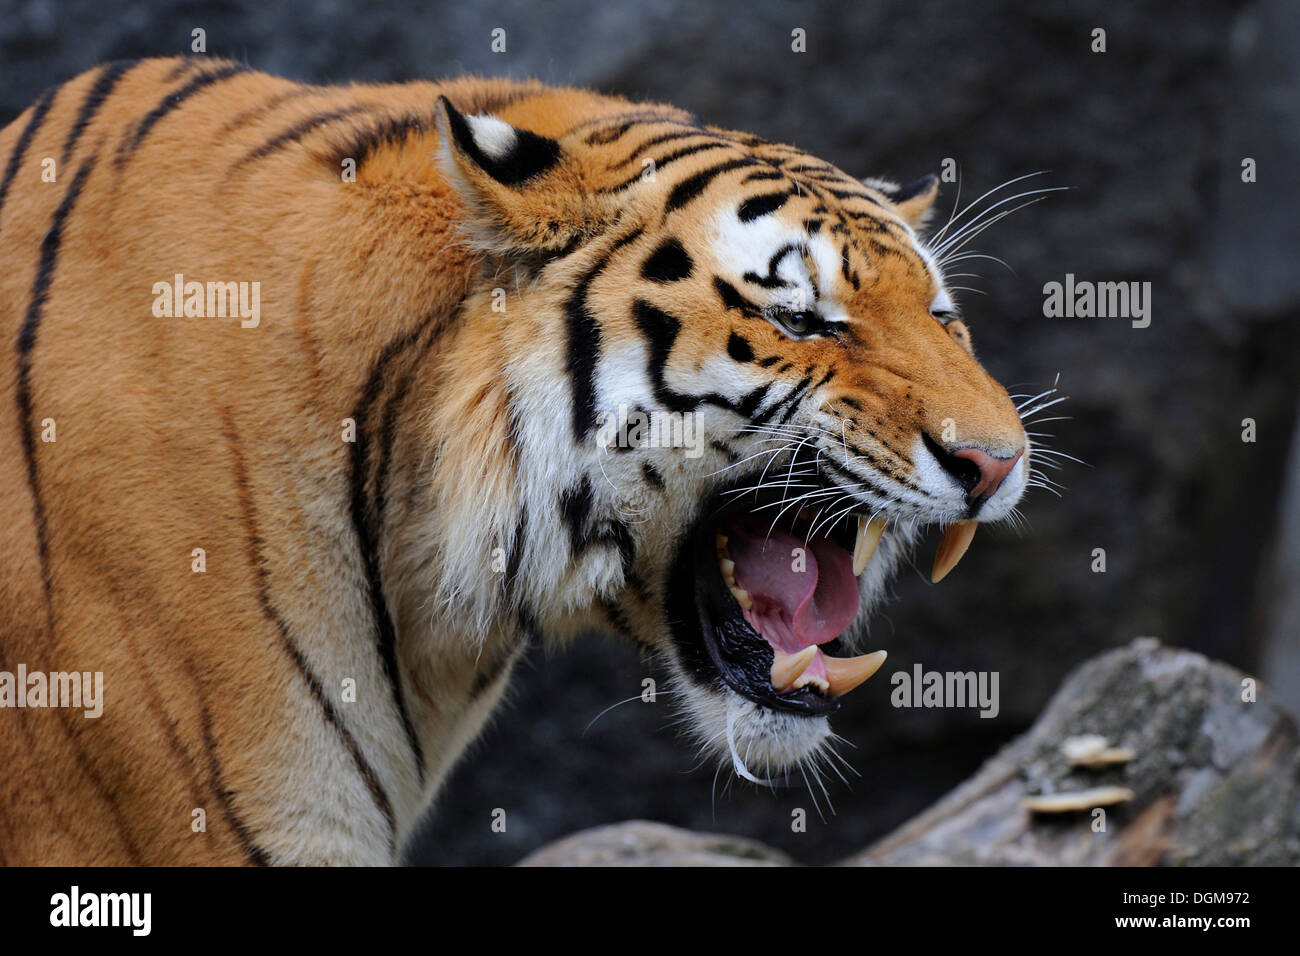 Siberian Tiger (Panthera tigris altaica), aggressively baring his teeth, Asia - Stock Image